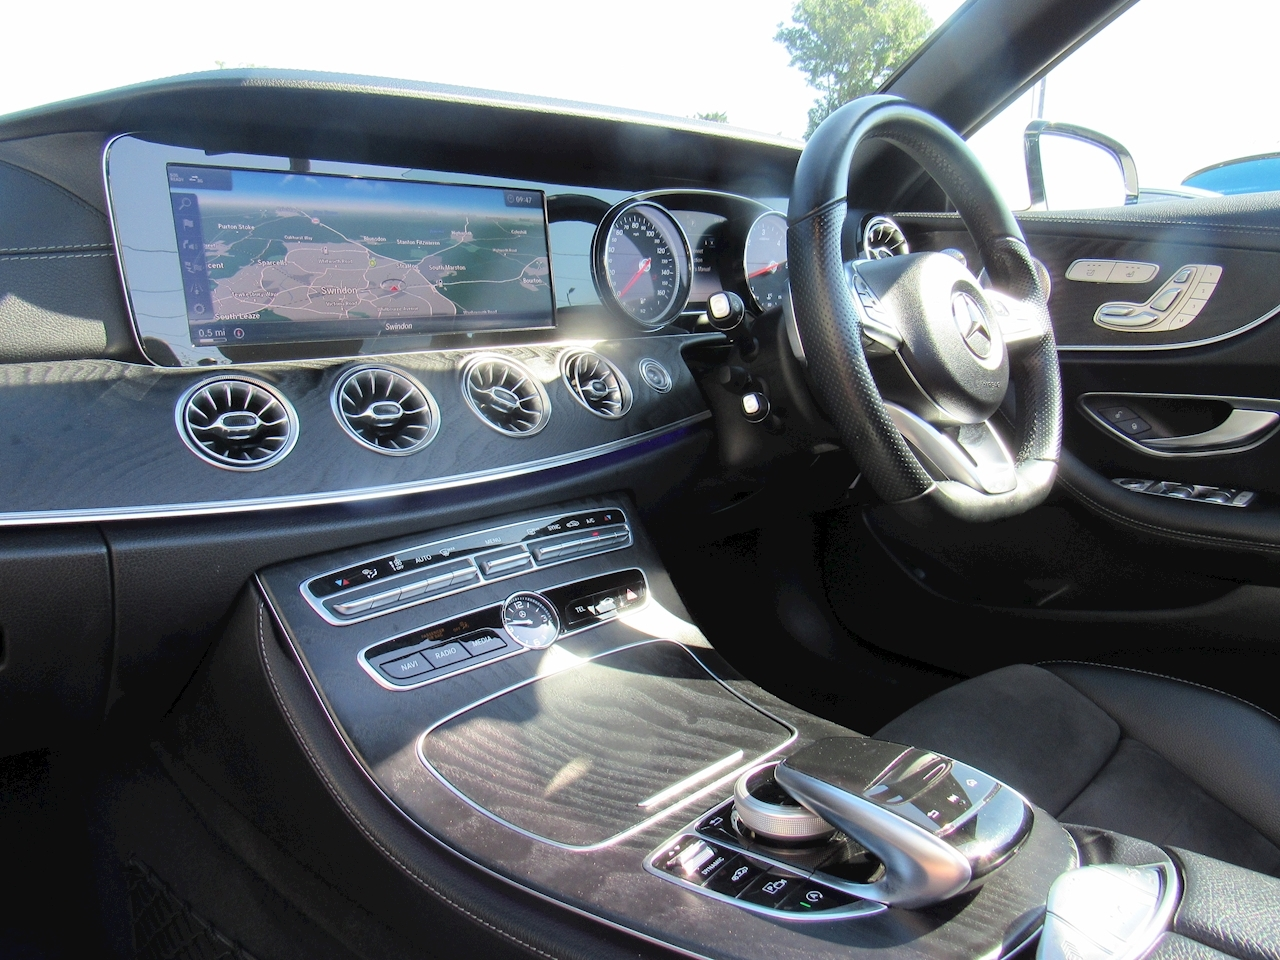 Mercedes-Benz E Class E 350 D 4Matic Amg Line Premium Plus Convertible 3.0 Automatic Diesel